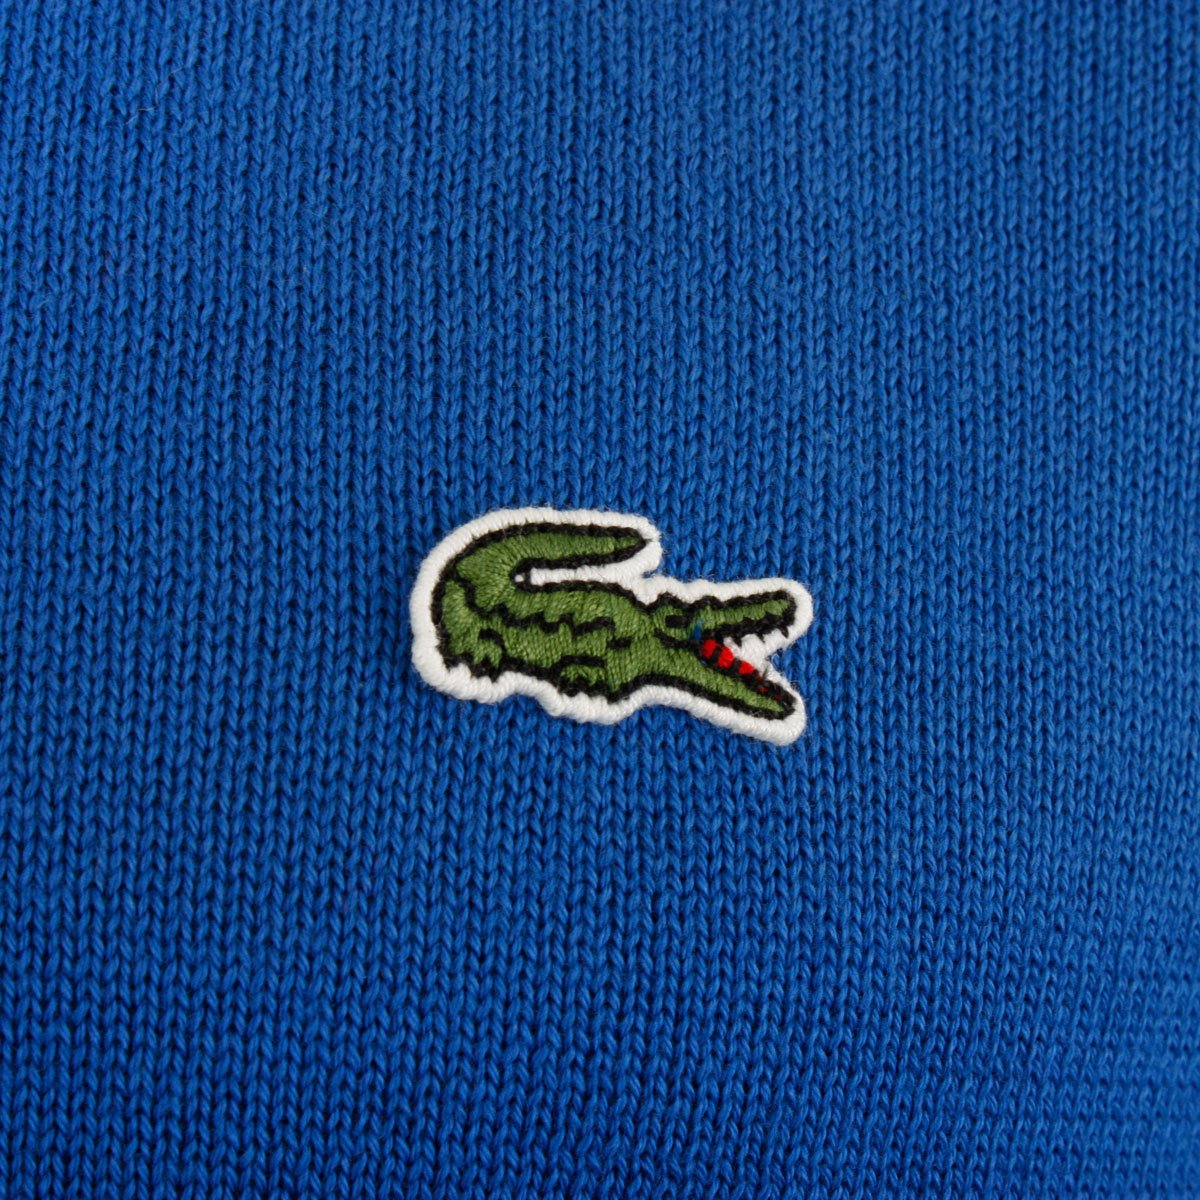 197fb18eee31dc Lacoste AH7418 Crew Neck Jumper Blue 6 Blue  Amazon.co.uk  Clothing